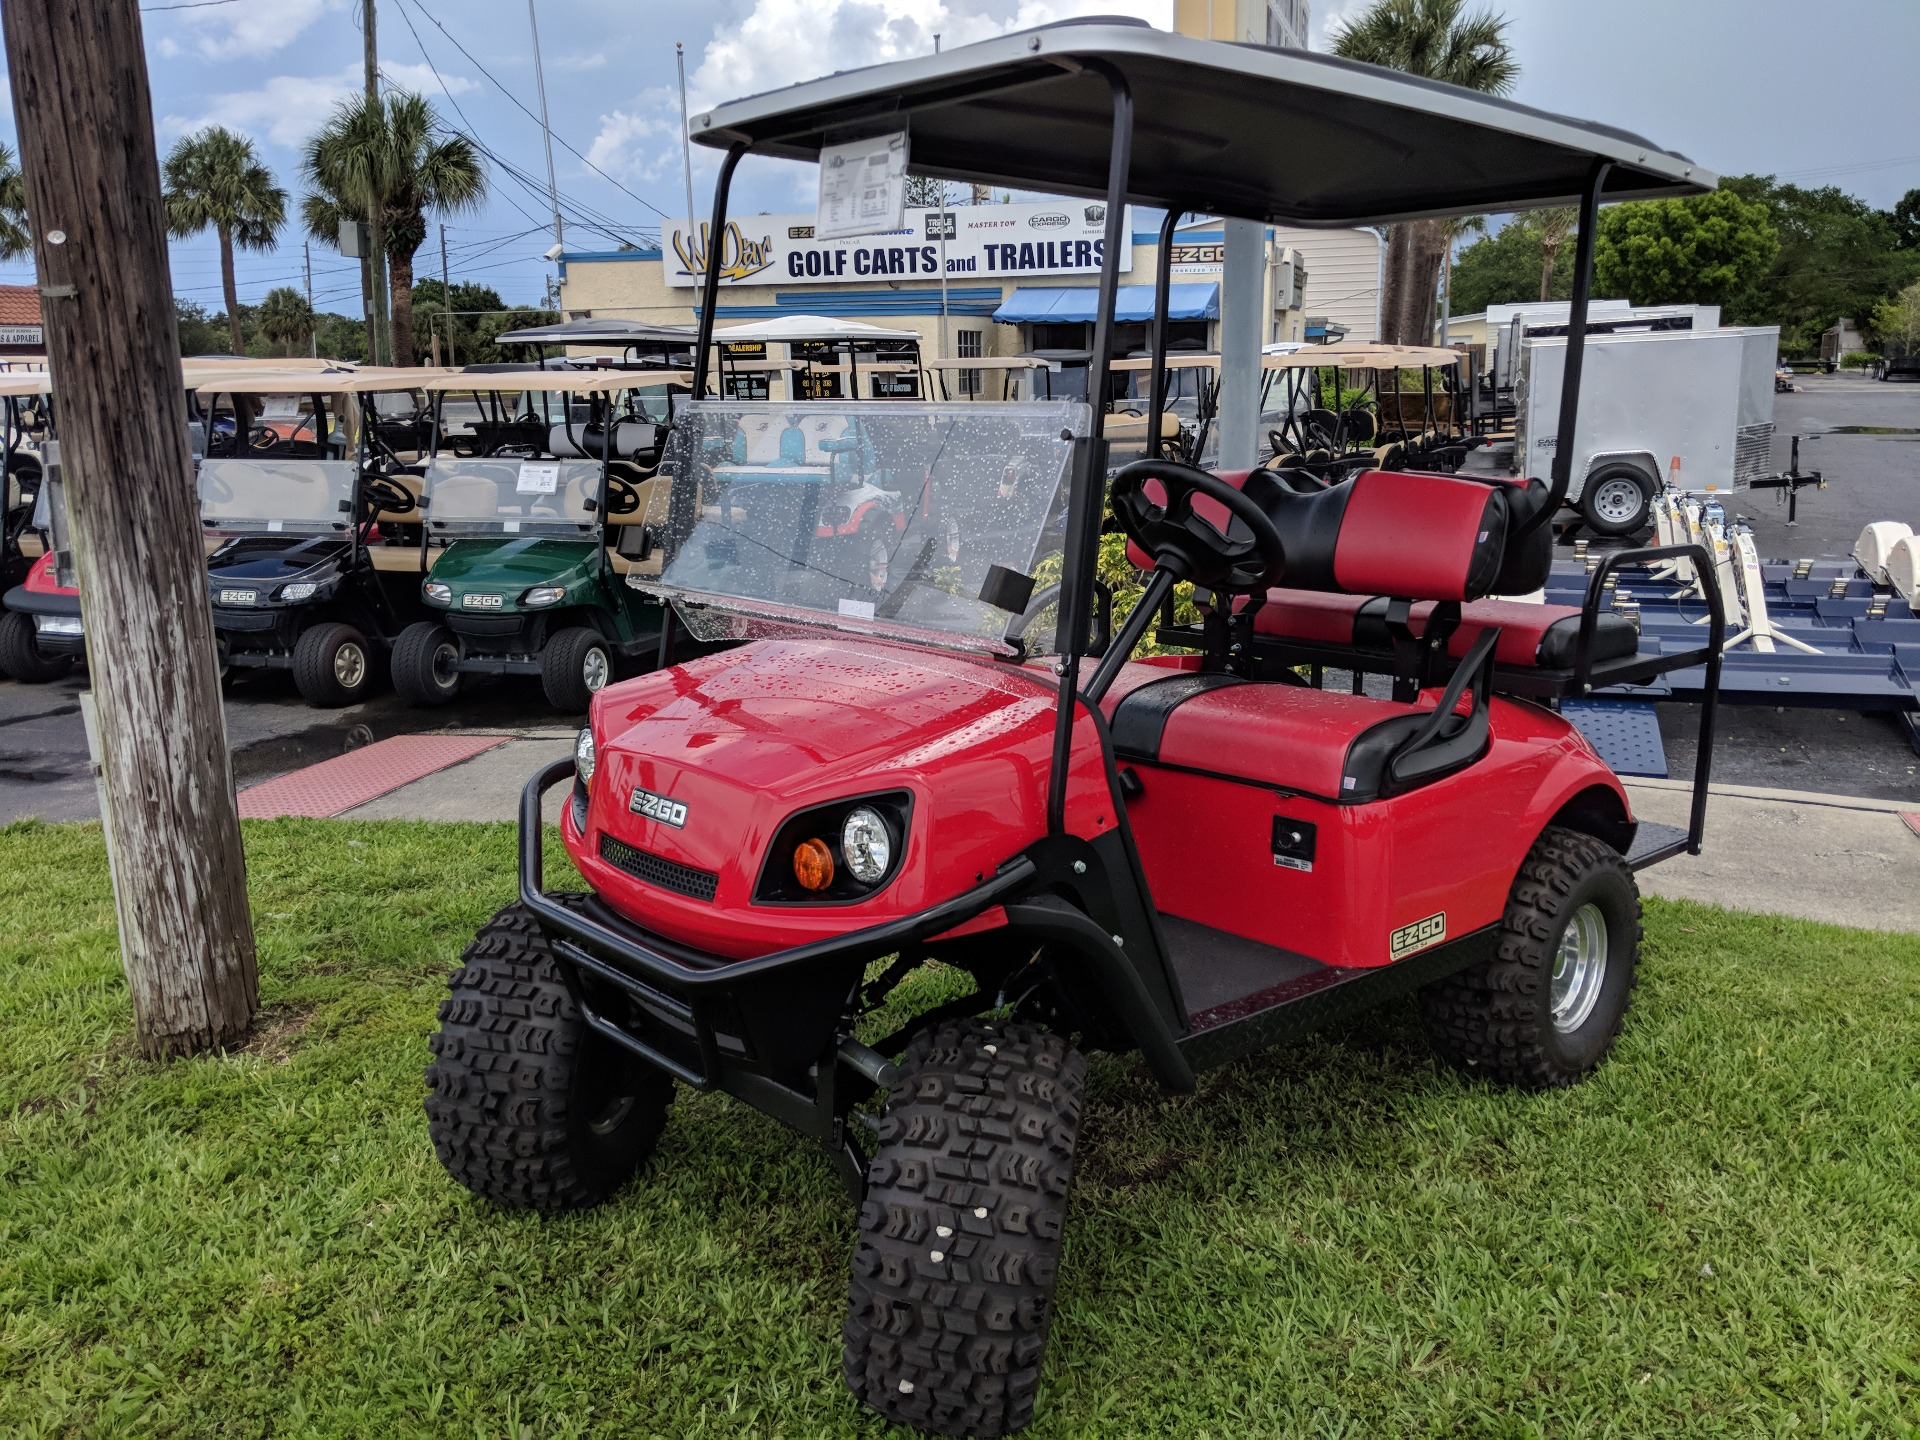 2018 E-Z-Go Express S4 Gas Powered Golf Carts Fort Pierce Florida on gas operated golf carts, replica golf carts, battery golf carts, street legal gas golf carts, home golf carts, aircraft golf carts, ezgo golf carts, gas golf cart parts, hydraulic golf carts, diesel golf carts, harley davidson 3 wheel golf carts, used golf carts, indoor golf carts, surplus golf carts, mobility golf carts, jets golf carts, self propelled golf carts, robotic golf carts, toro golf carts, custom golf carts,